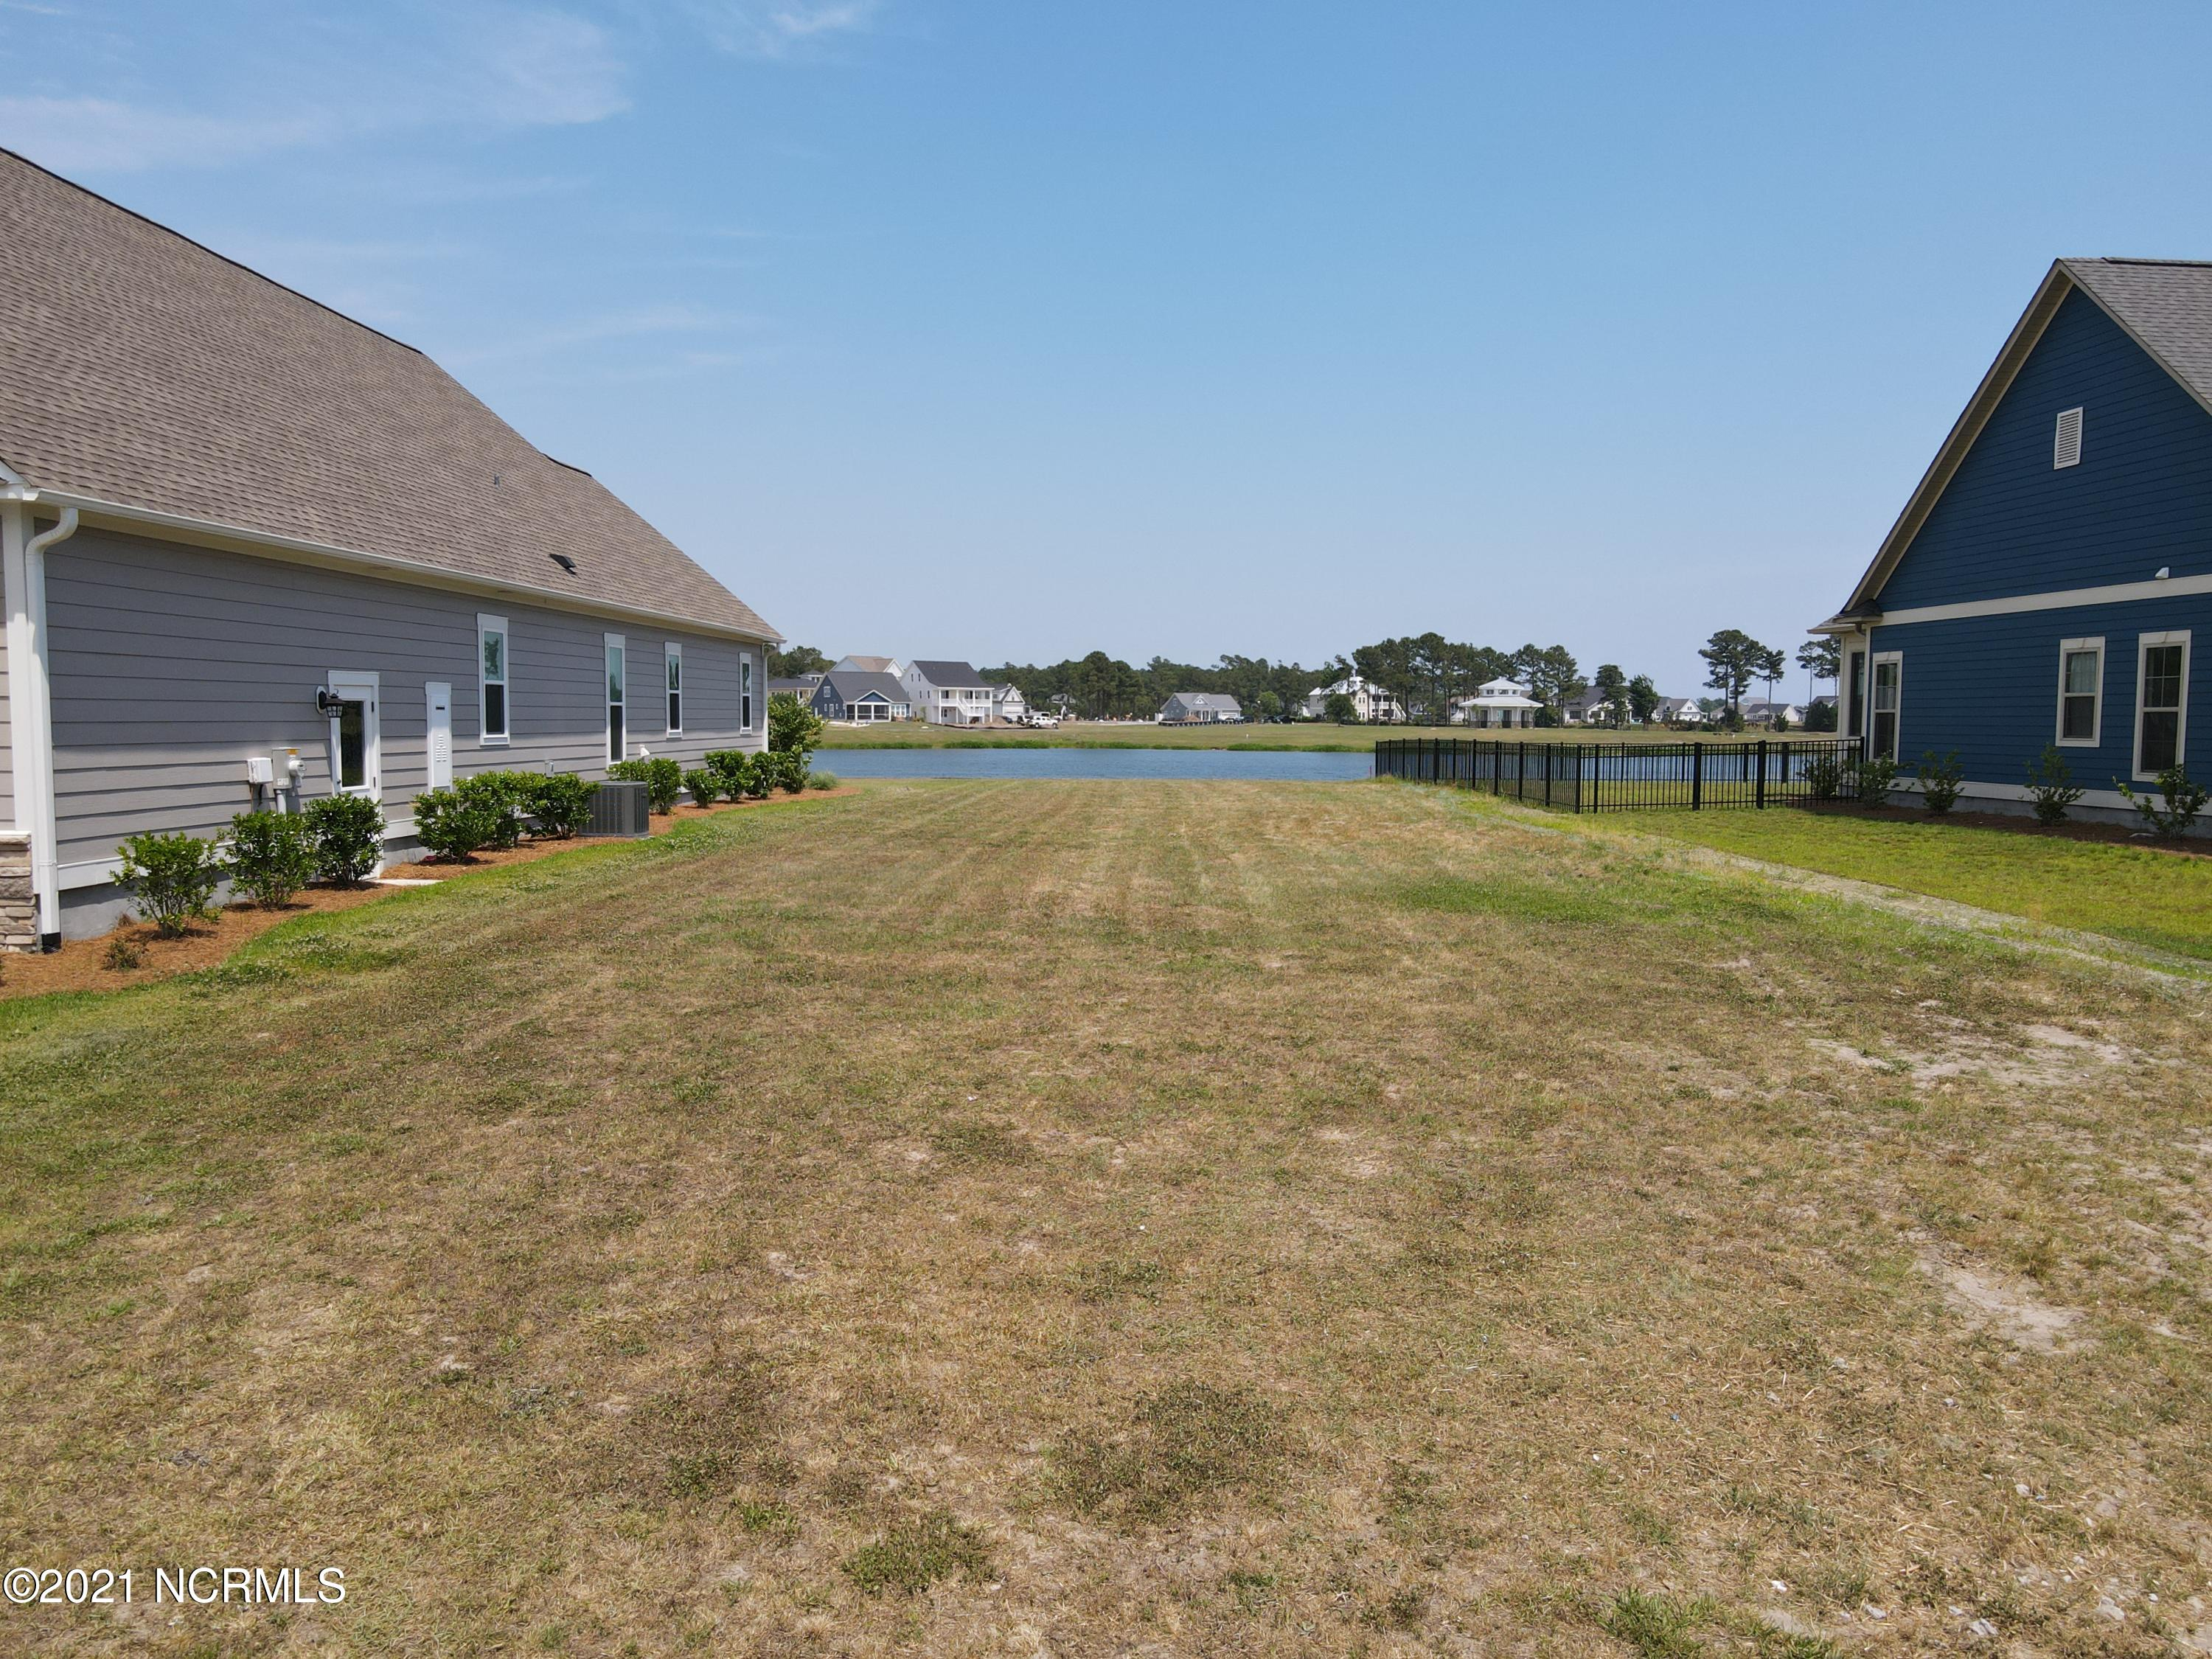 Vacant homesite, ready to build in luxury waterfront community of Summerhouse on Everett Bay!  All the amenities are in place in this idyllic neighborhood, featuring a huge clubhouse, pool, fitness center, day docks, boat ramp, boat storage, pickle-ball court, tennis court, basketball court, running trails, playground, and more! With our Featured Builders, you can design your coastal home and start living the beach life in no time!  10' Drainage Easement - east side of the lot. Call today for more information!